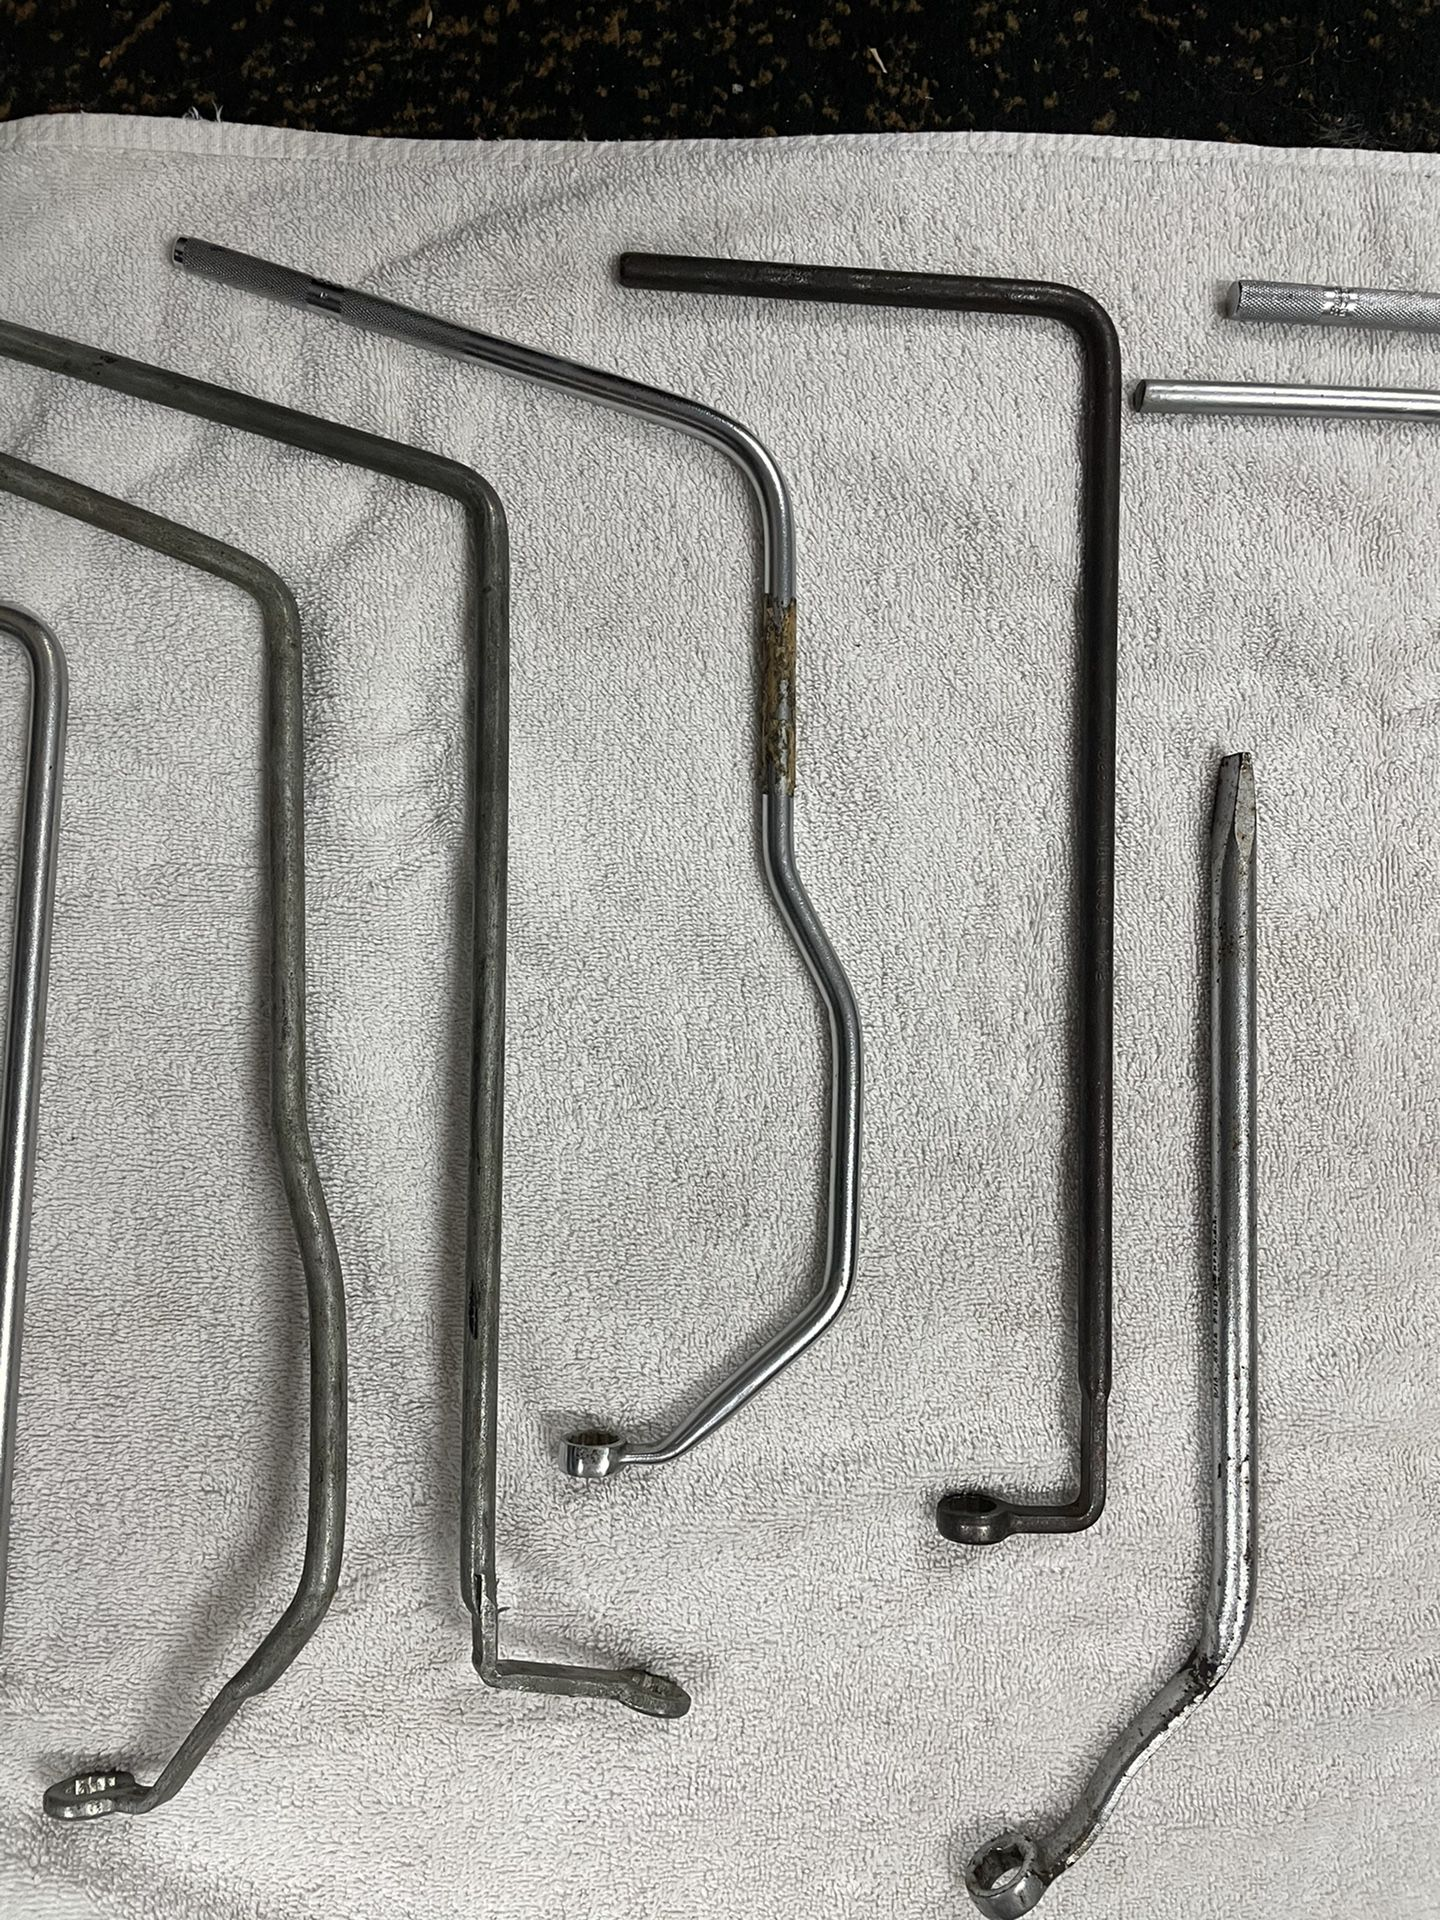 Price Cut Mechanics Distributor Wrenches 14 Of Them